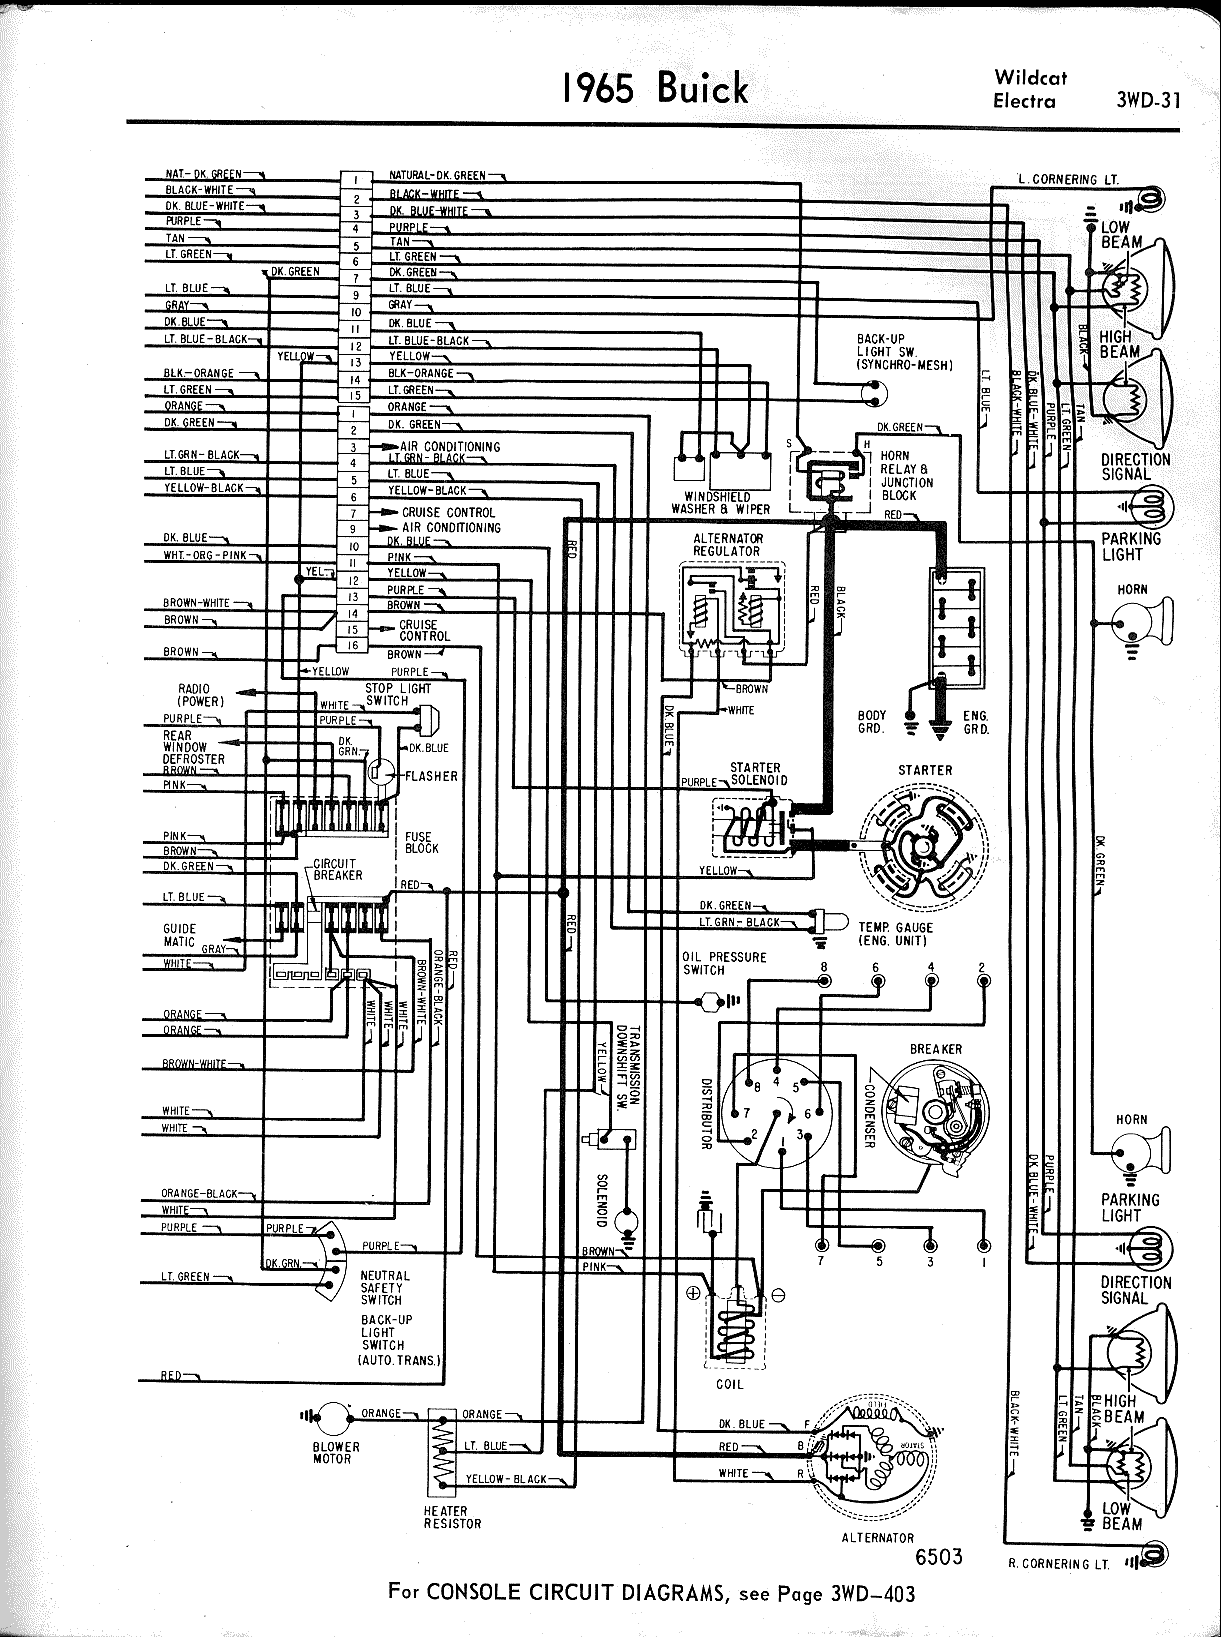 [DVZP_7254]   F331A1E Arctic Cat Wildcat 650 Wiring Diagram | Wiring Library | Arctic Cat Wildcat 650 Wiring Diagram |  | Wiring Library